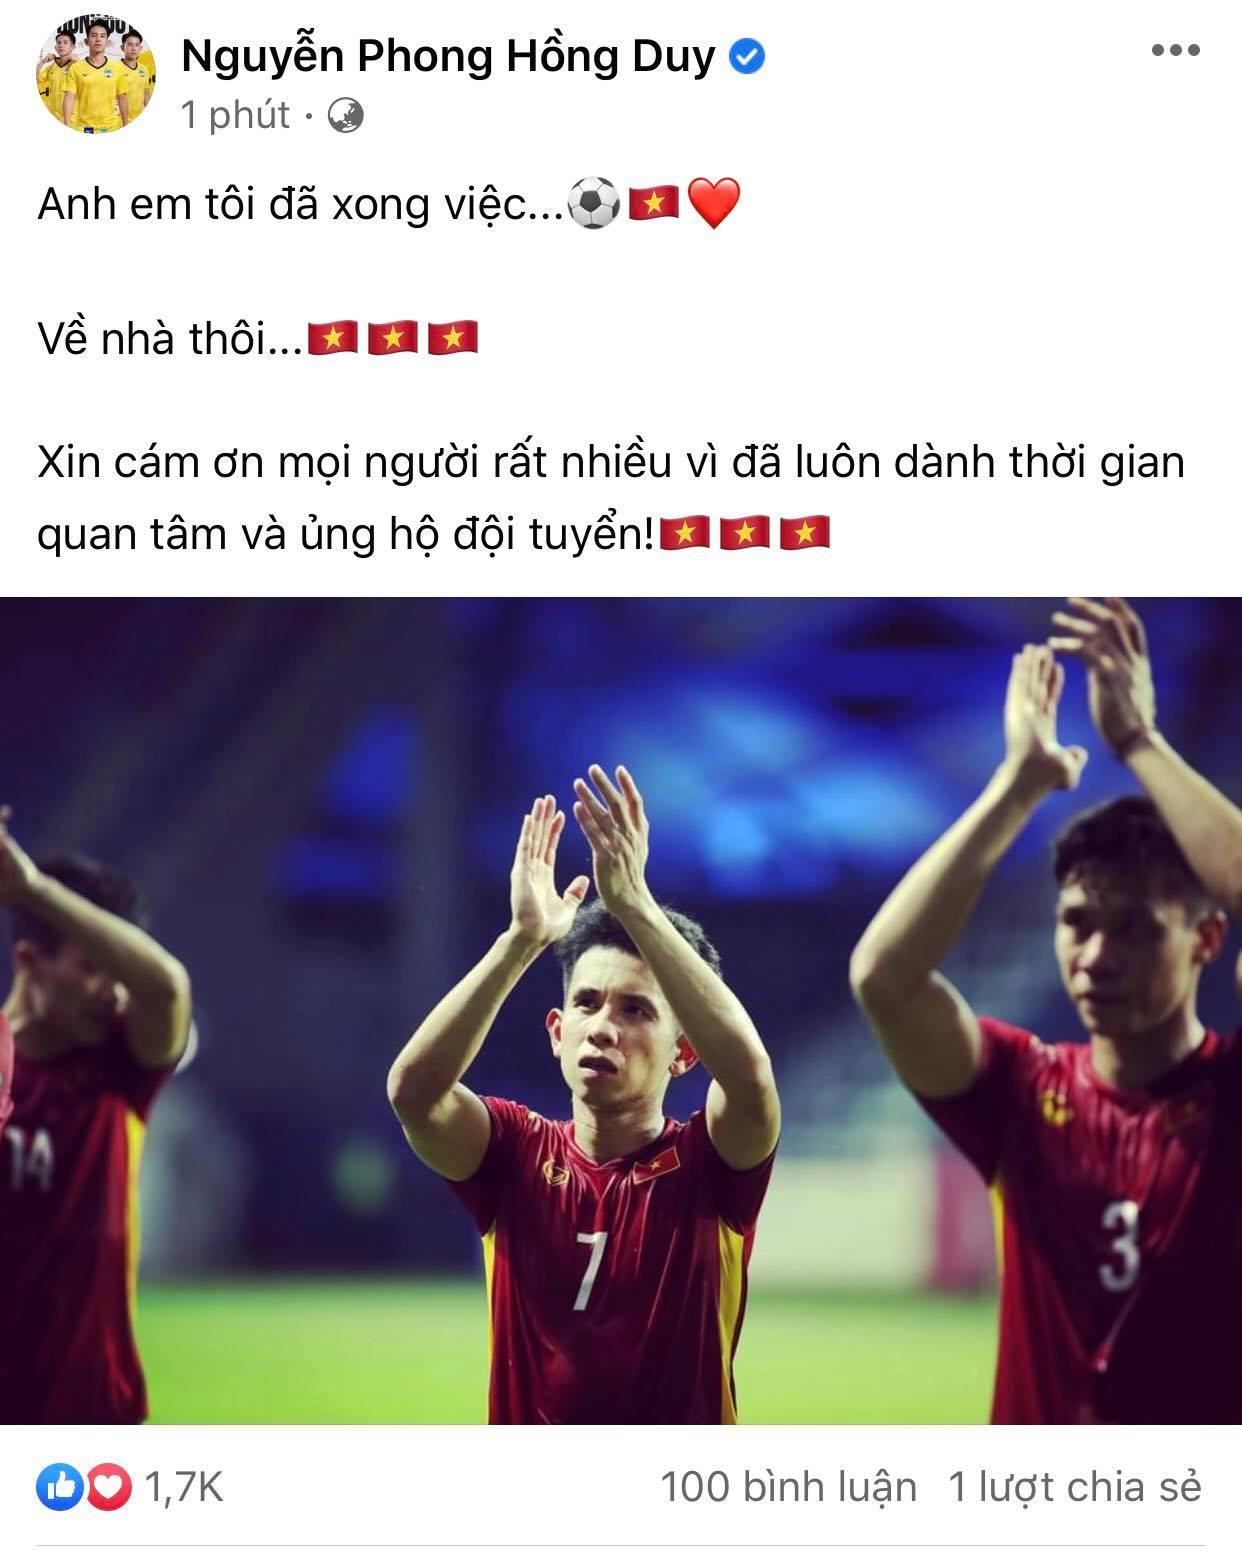 Nguyen Phong Hong Duy thanked the fans for always caring and supporting the team!